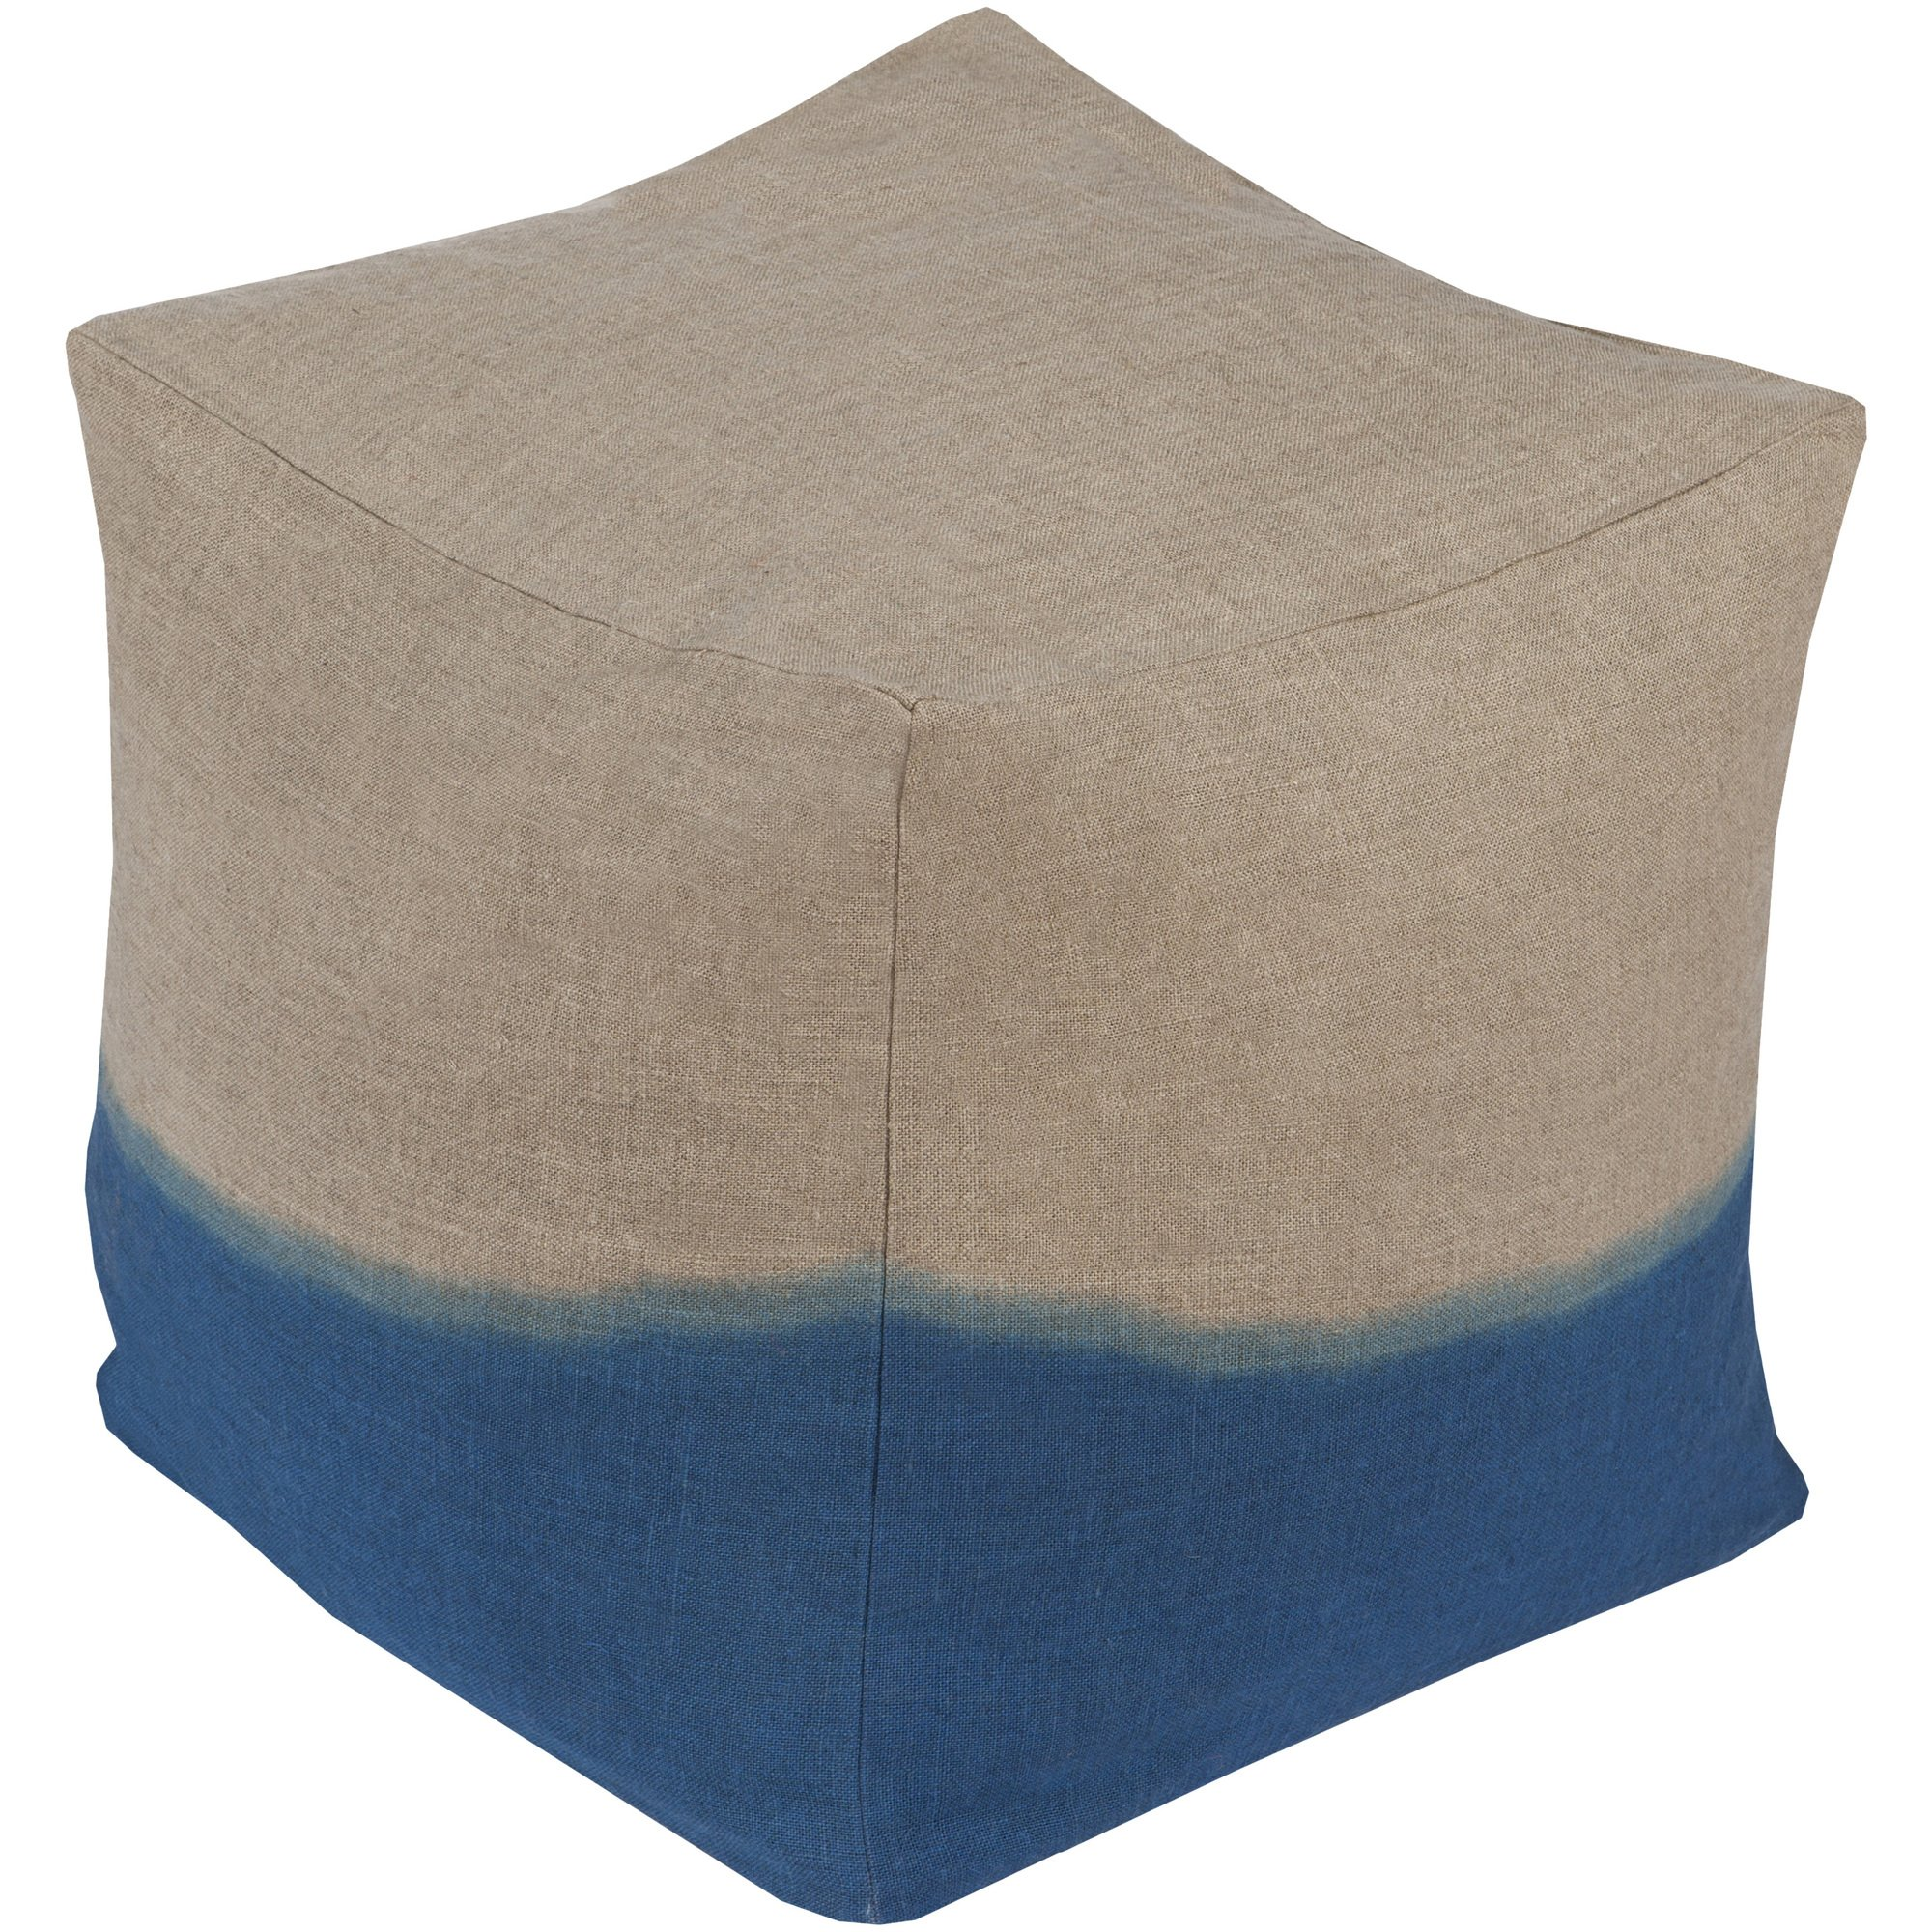 Surya DDPF001-181818 100-Percent Linen Pouf, 18-Inch by 18-Inch by 18-Inch, Light Gray/Teal